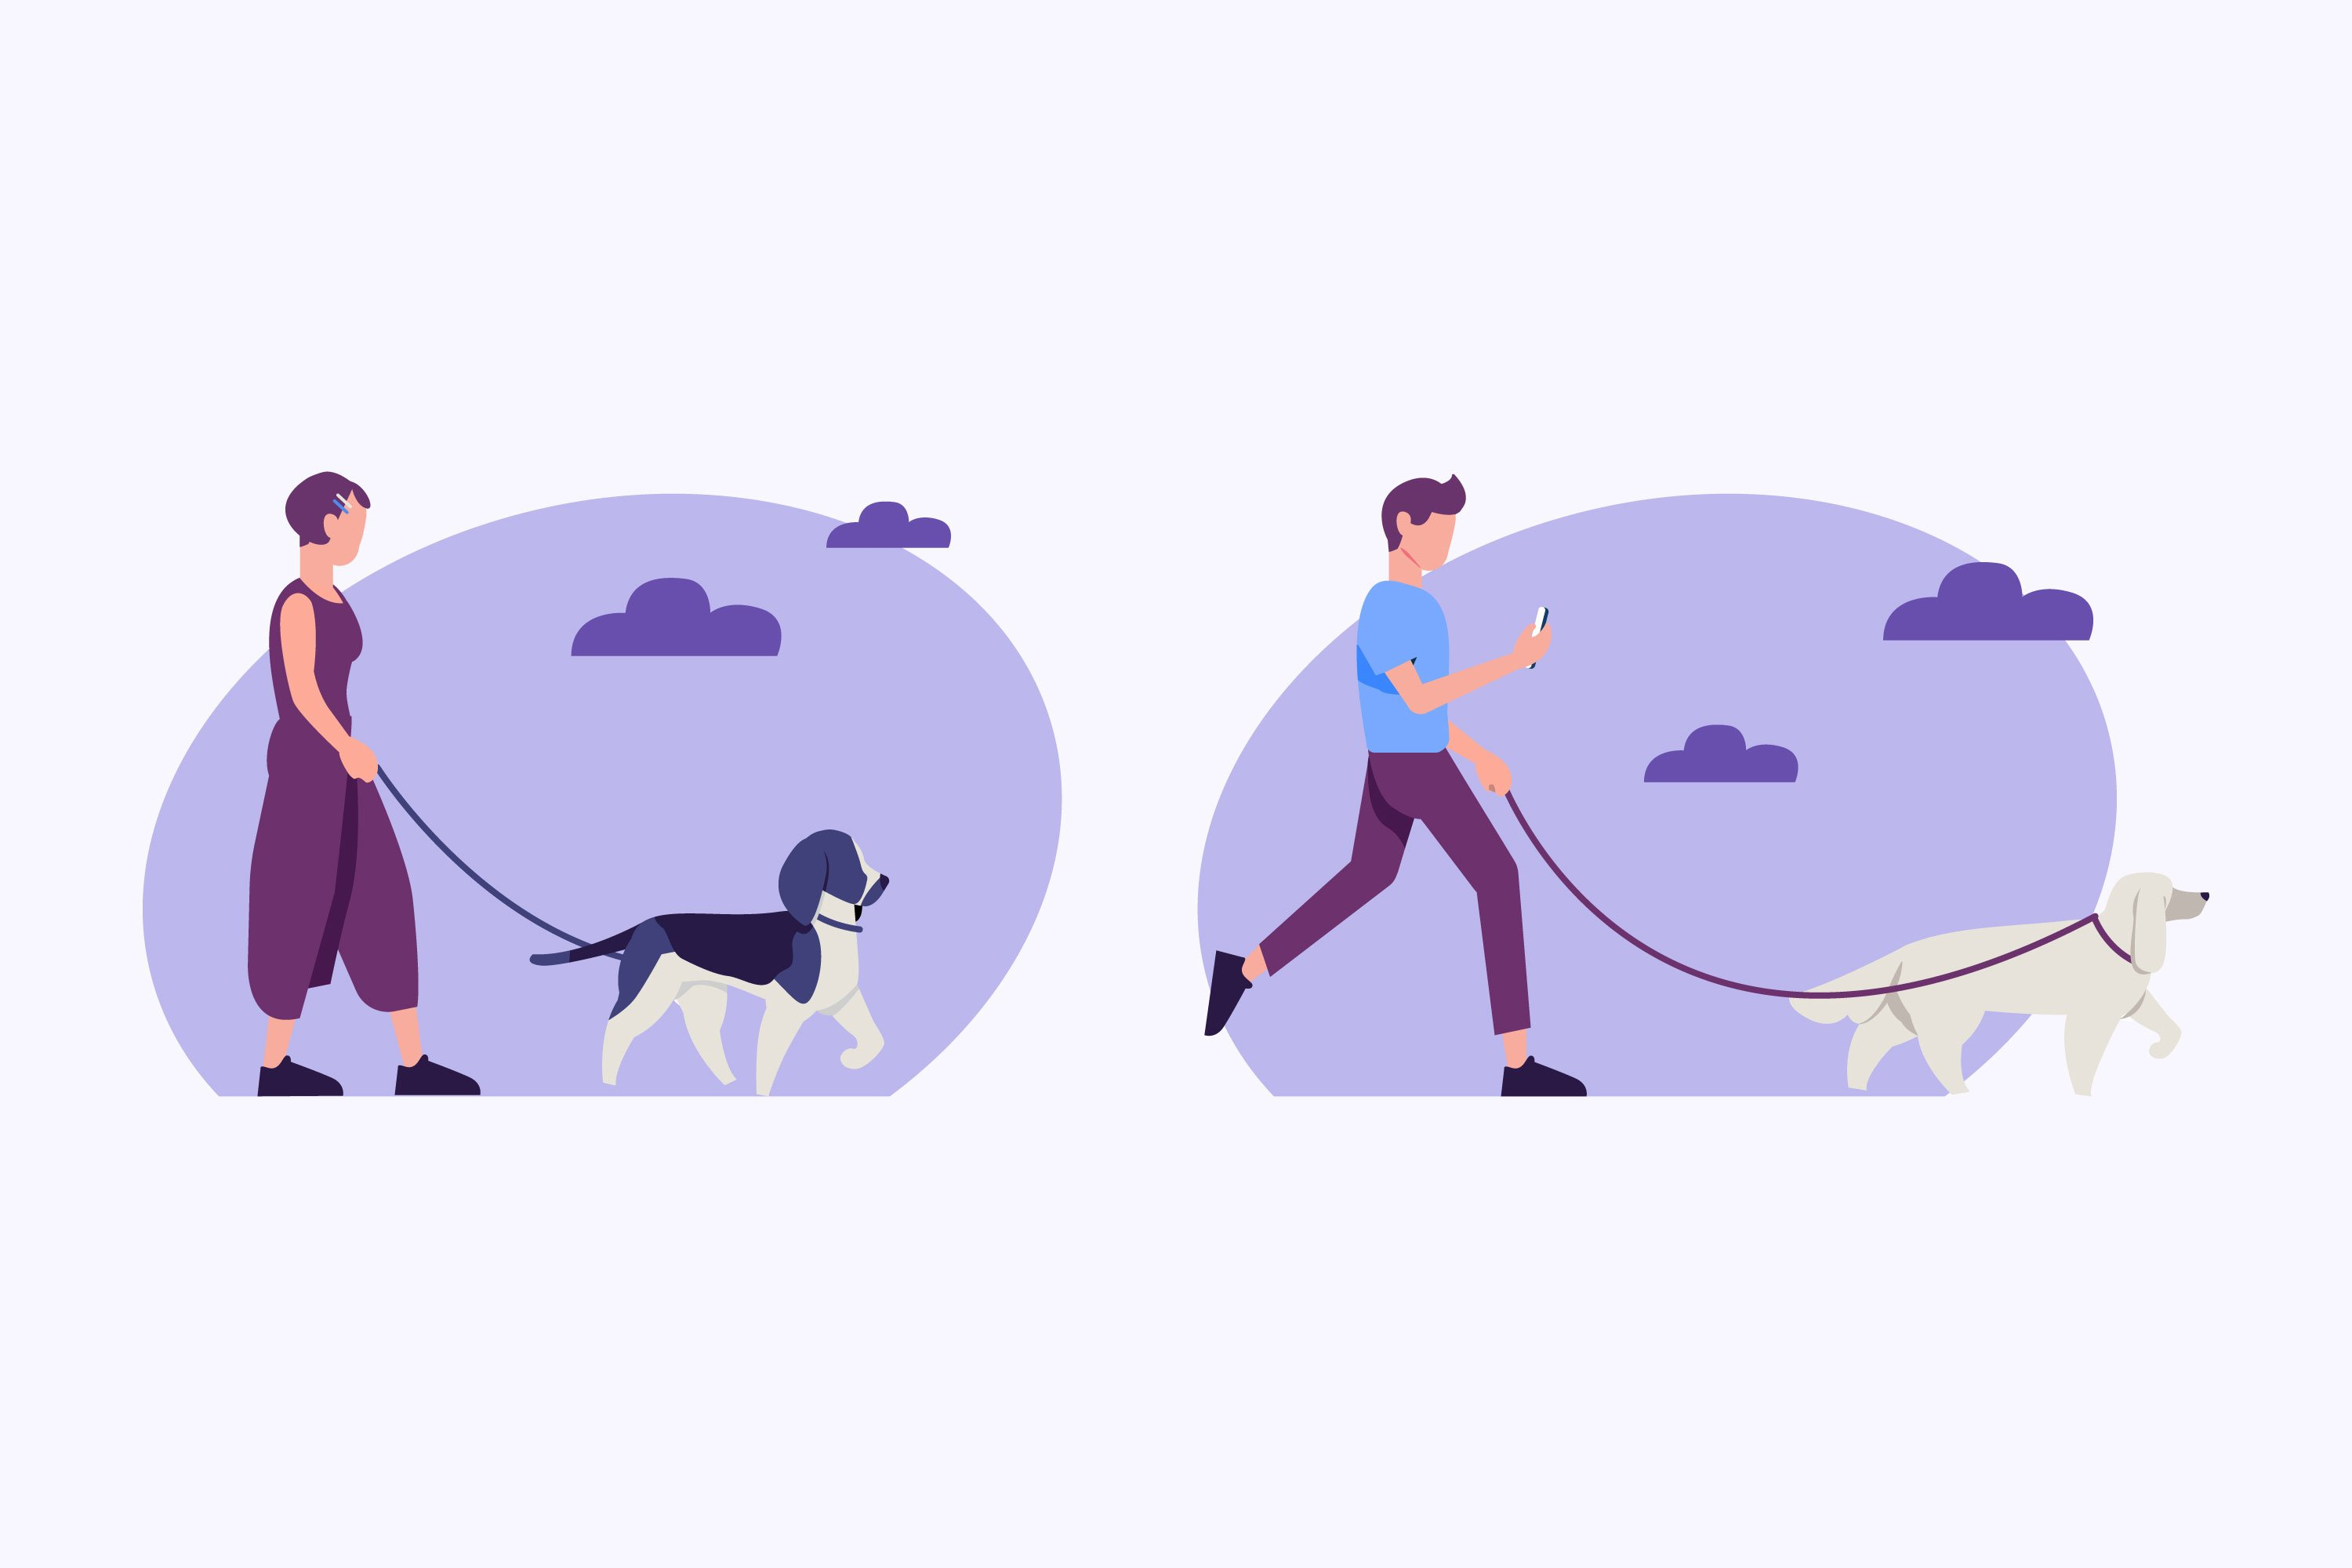 People Walking the Dog example image 1